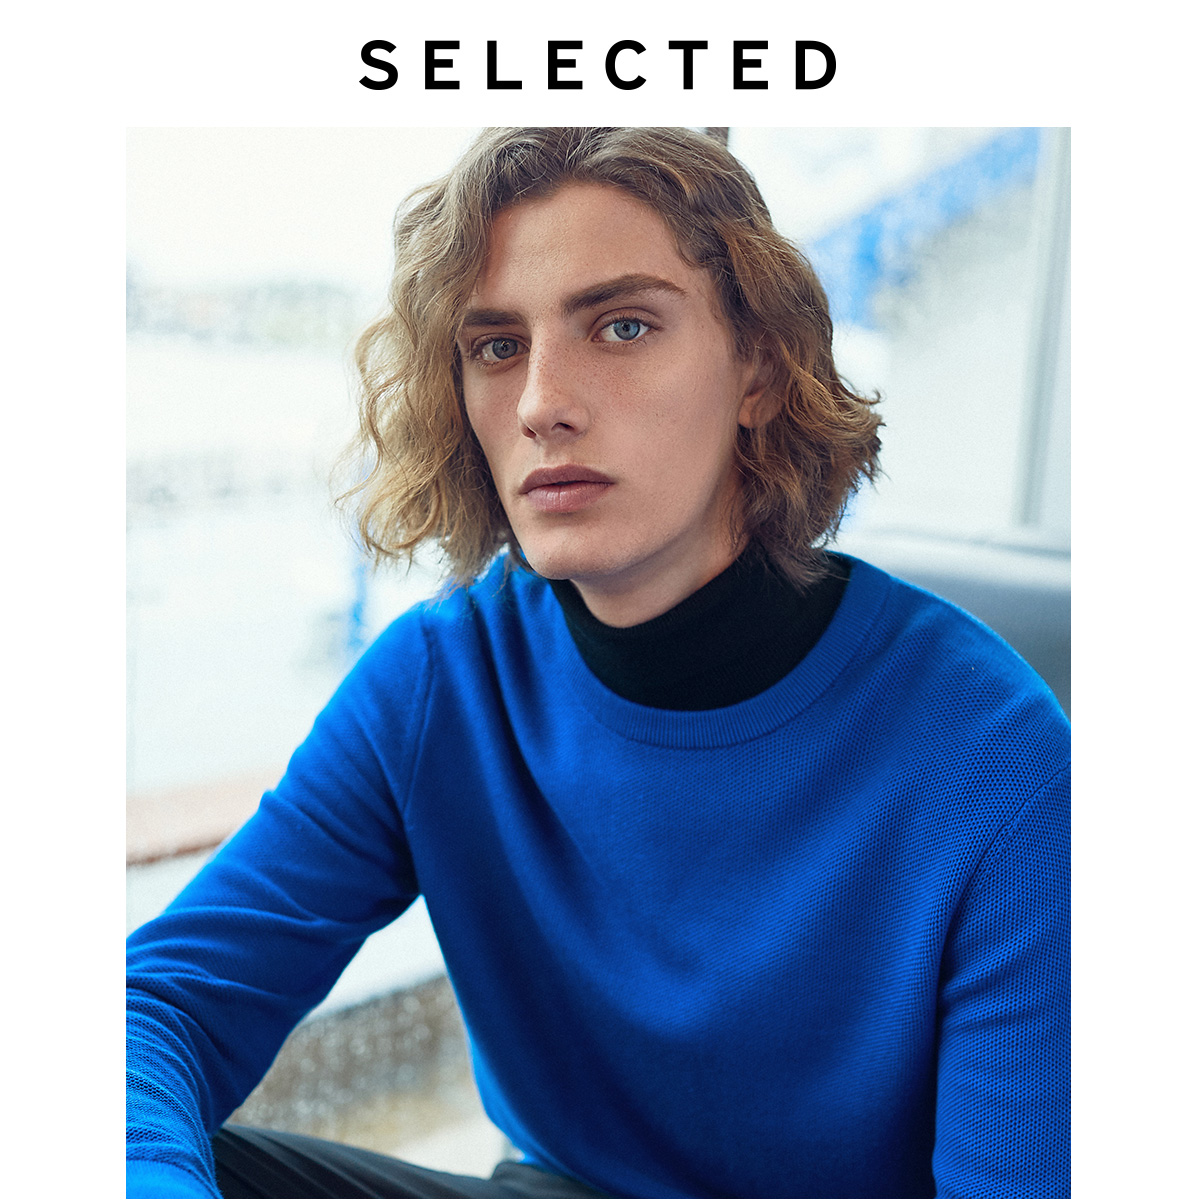 SELECTED Autumn Pullovers Clothes Long-sleeved Men's Round-collar Leisure Knitted Sweater Shirt S | 419324516